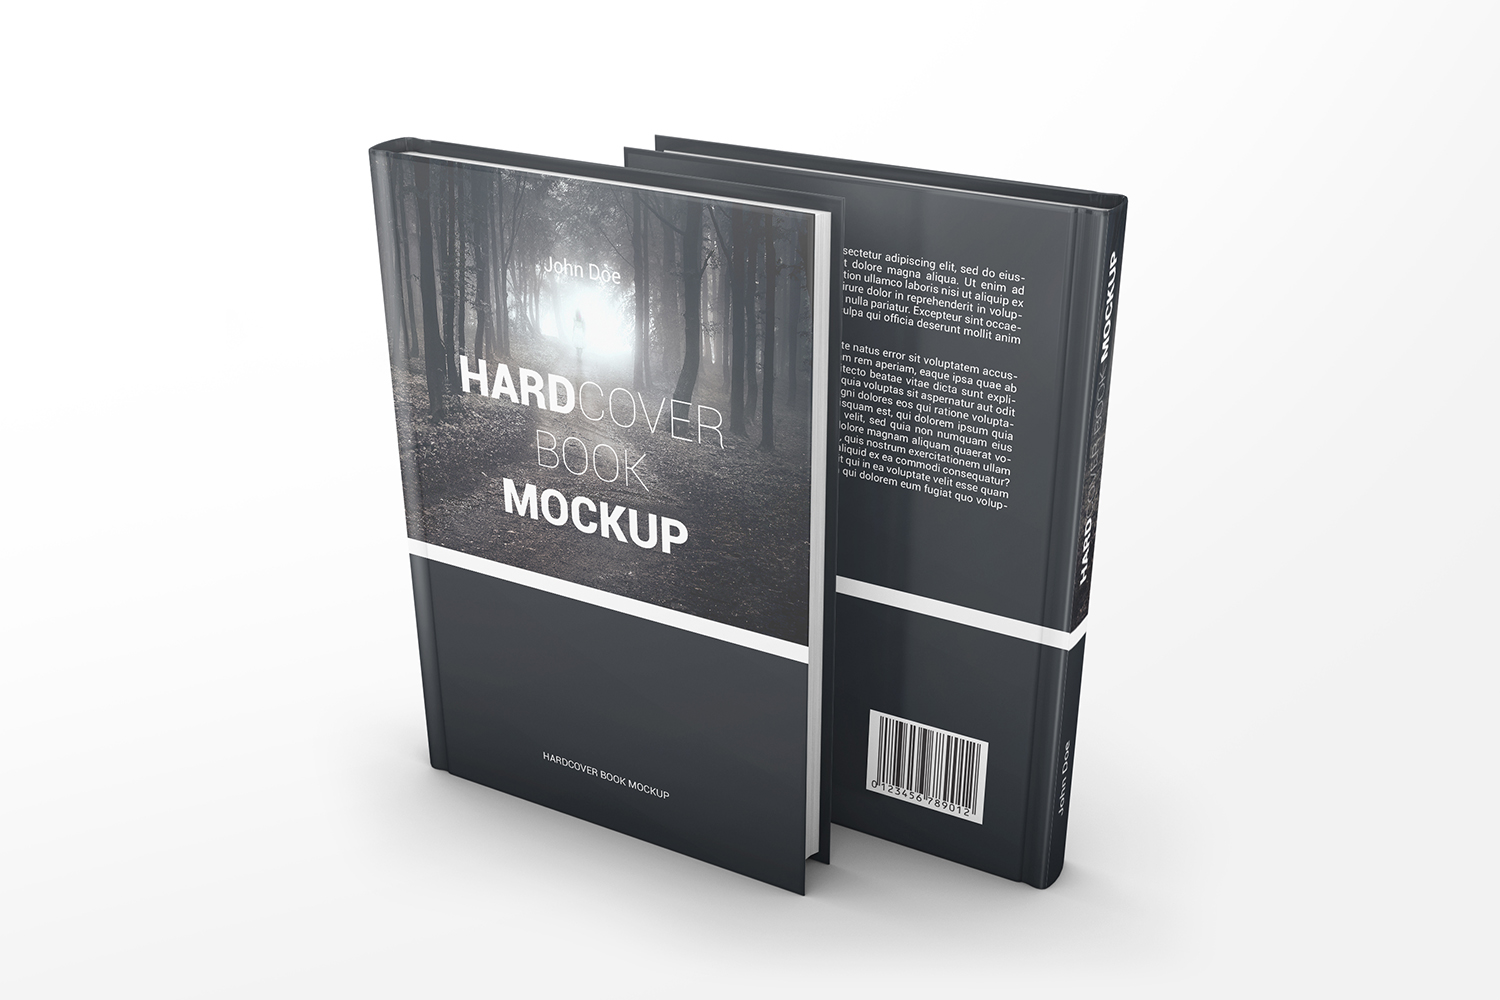 Hardcover Book Mockups example image 6